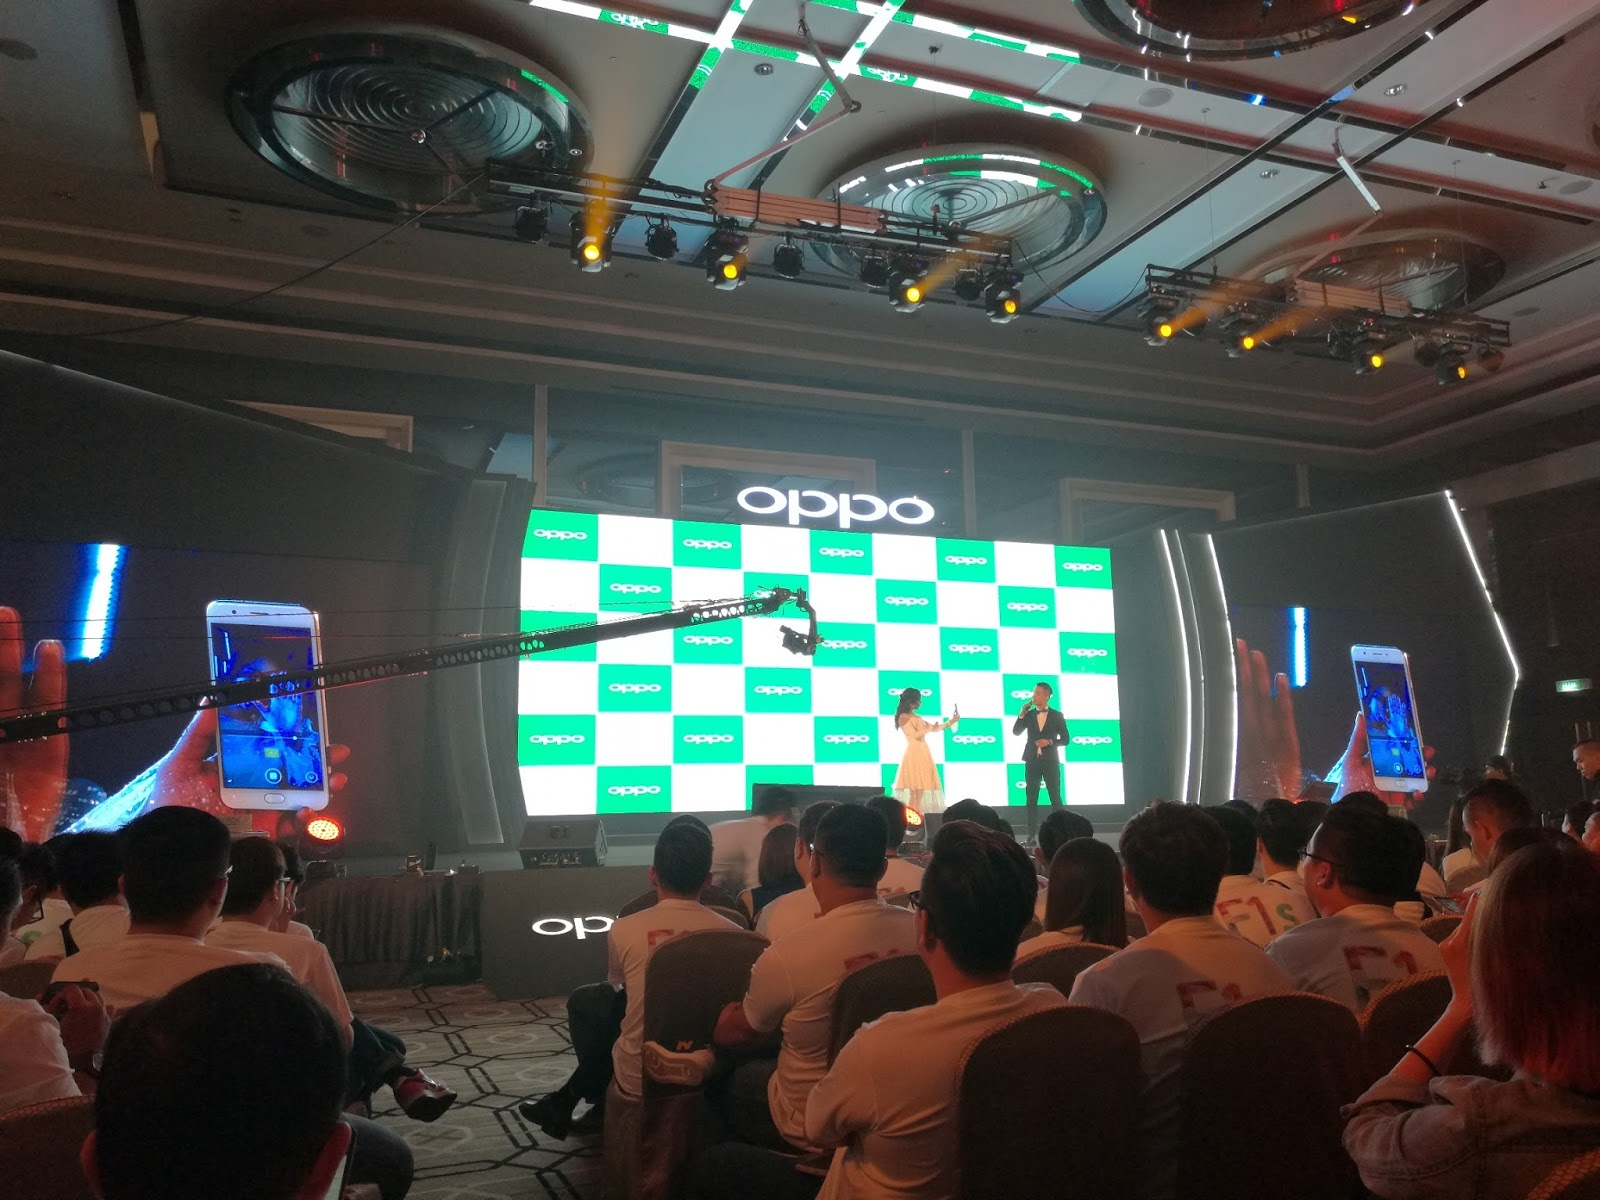 Actress model and television host as well as OPPO F1s Selfie Ambassador Nora Danish was present at the launch to demonstrate the phone s selfie feature